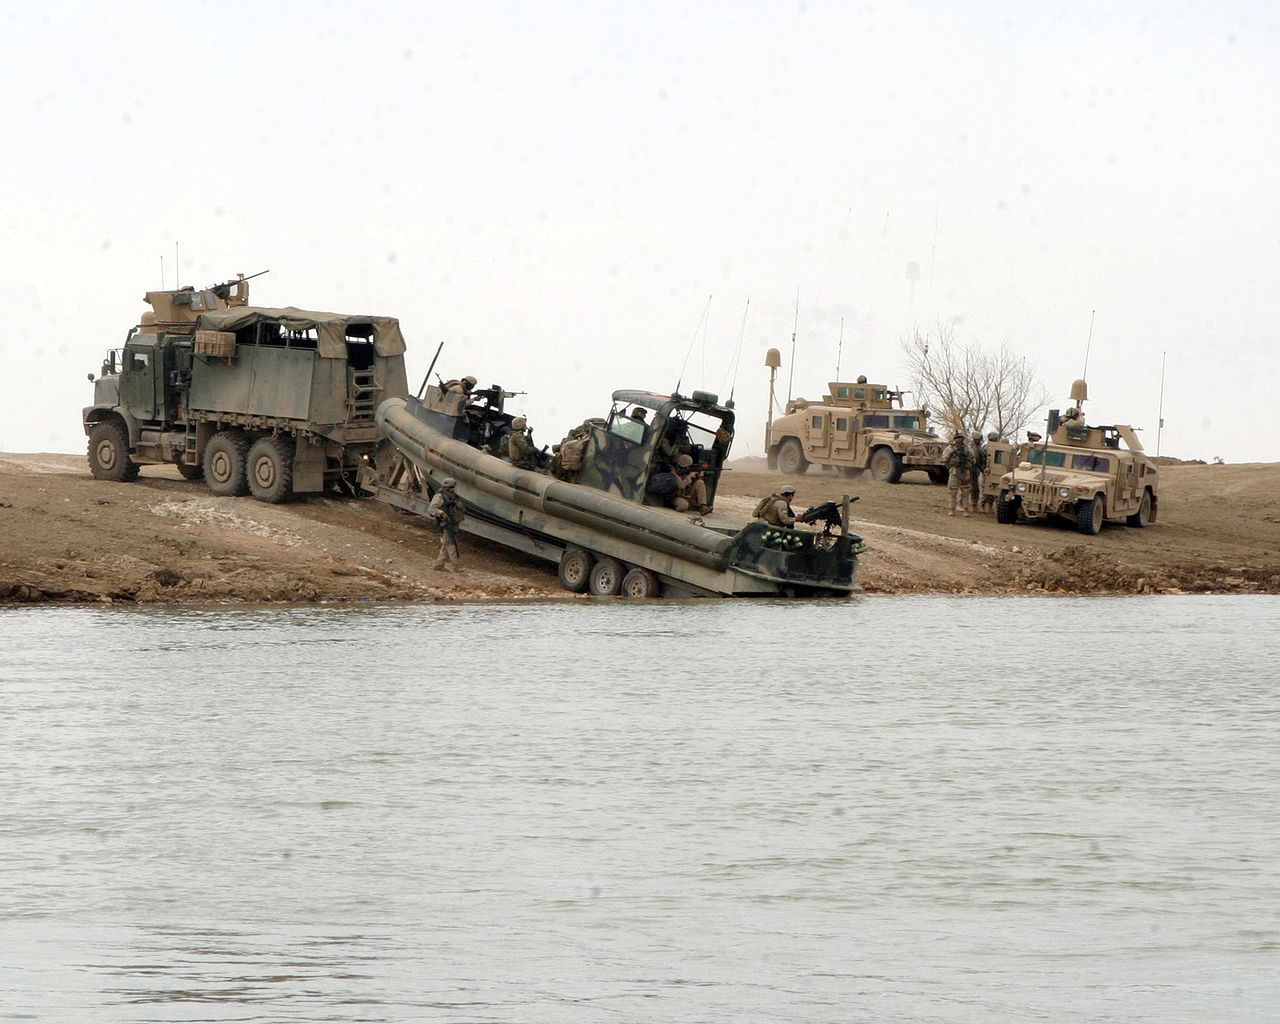 It's like a weekend at Lake Havasu    except with BIG guns